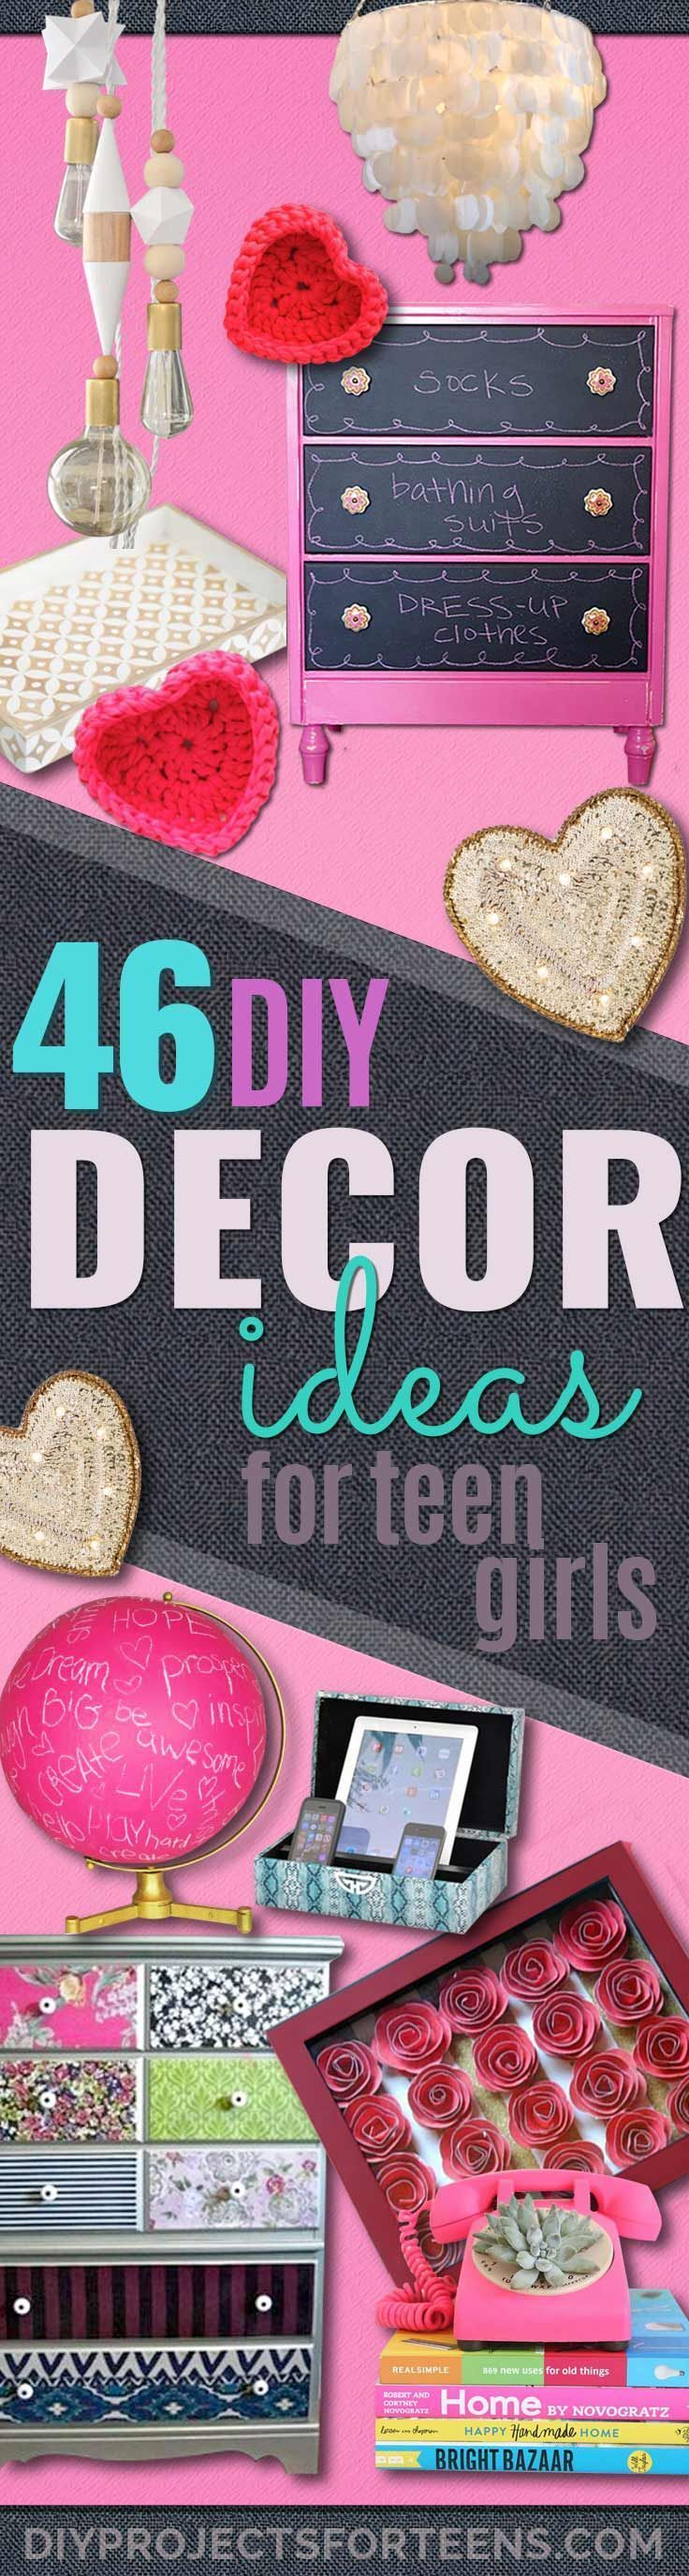 Best 25 Diy teen room decor ideas on Pinterest Diy room decore